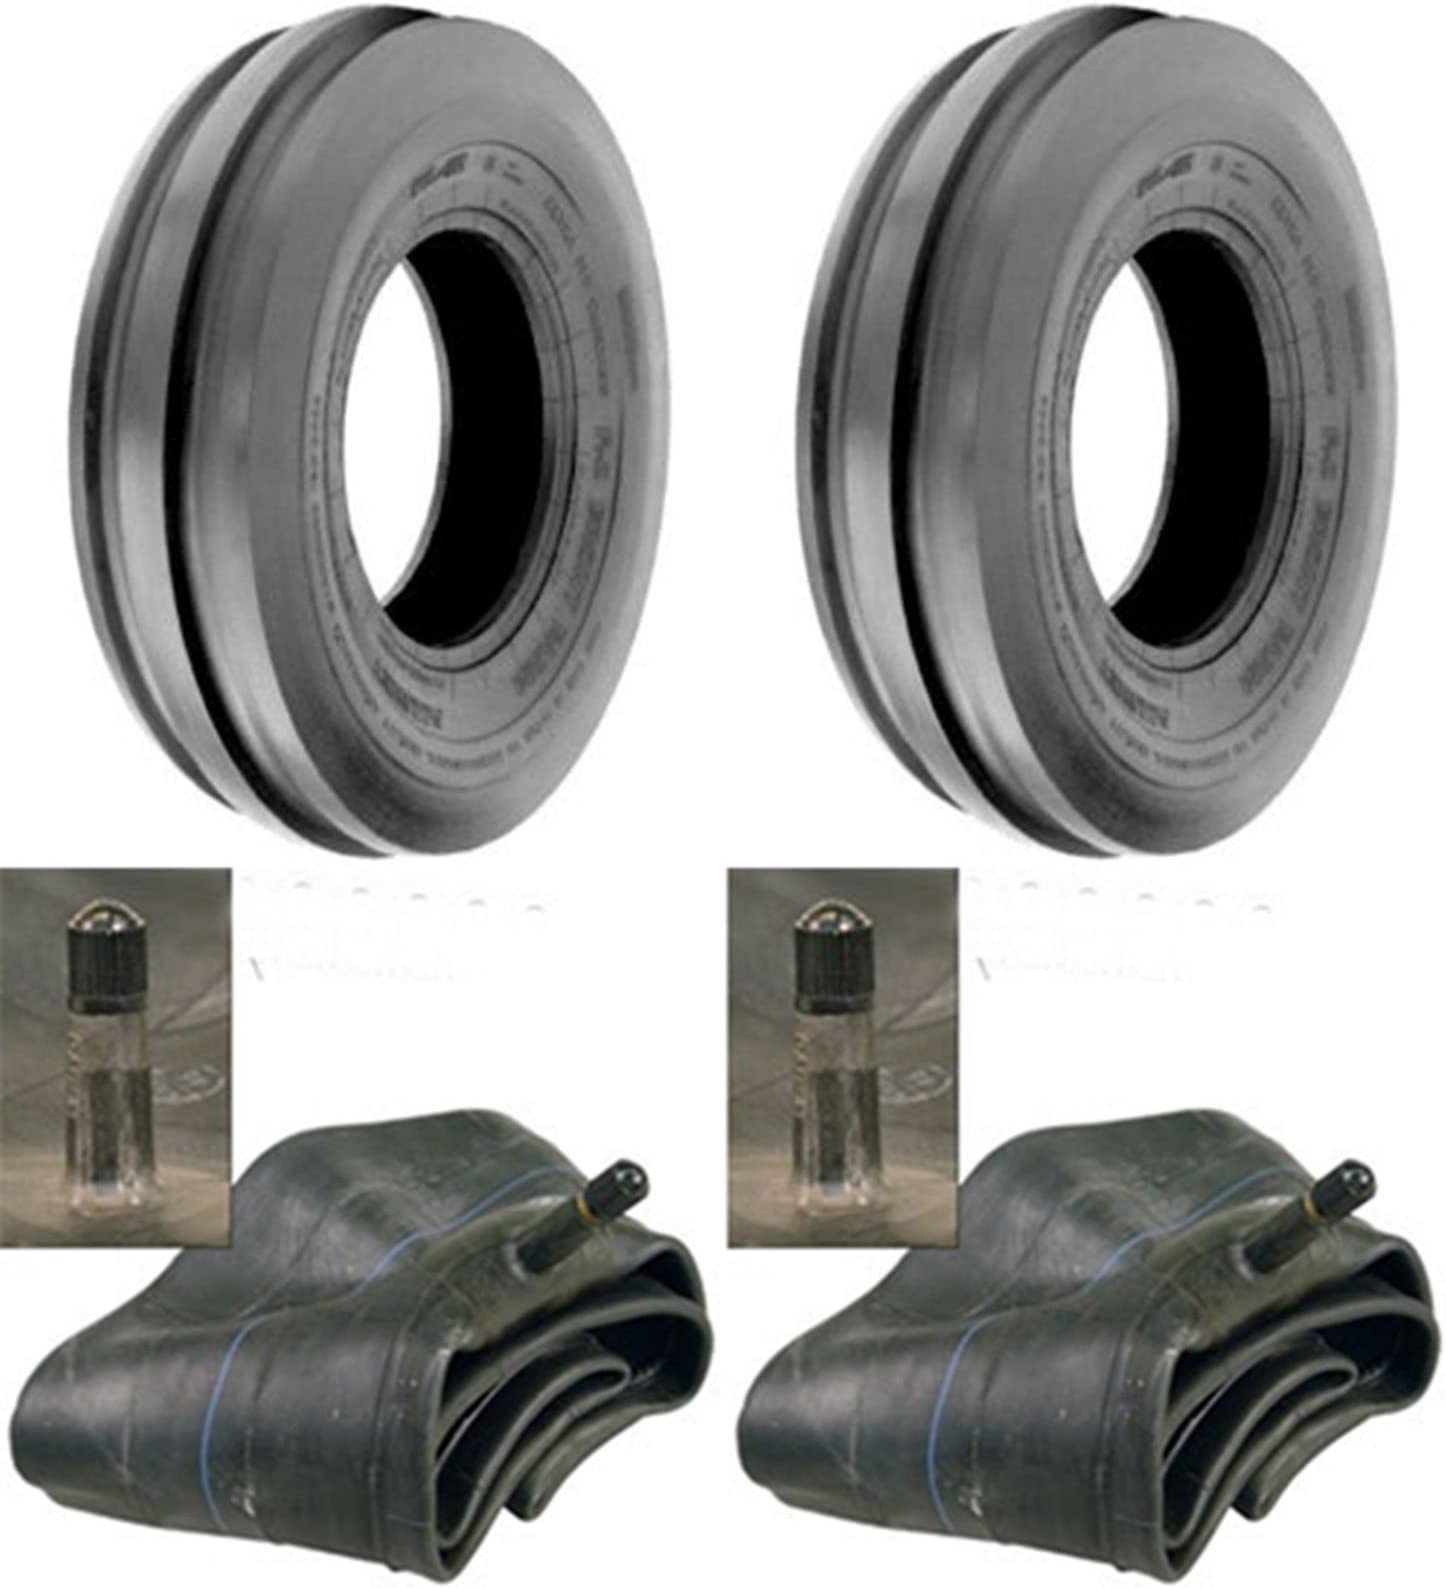 Two 7.50-16 R1 Tractor Tires